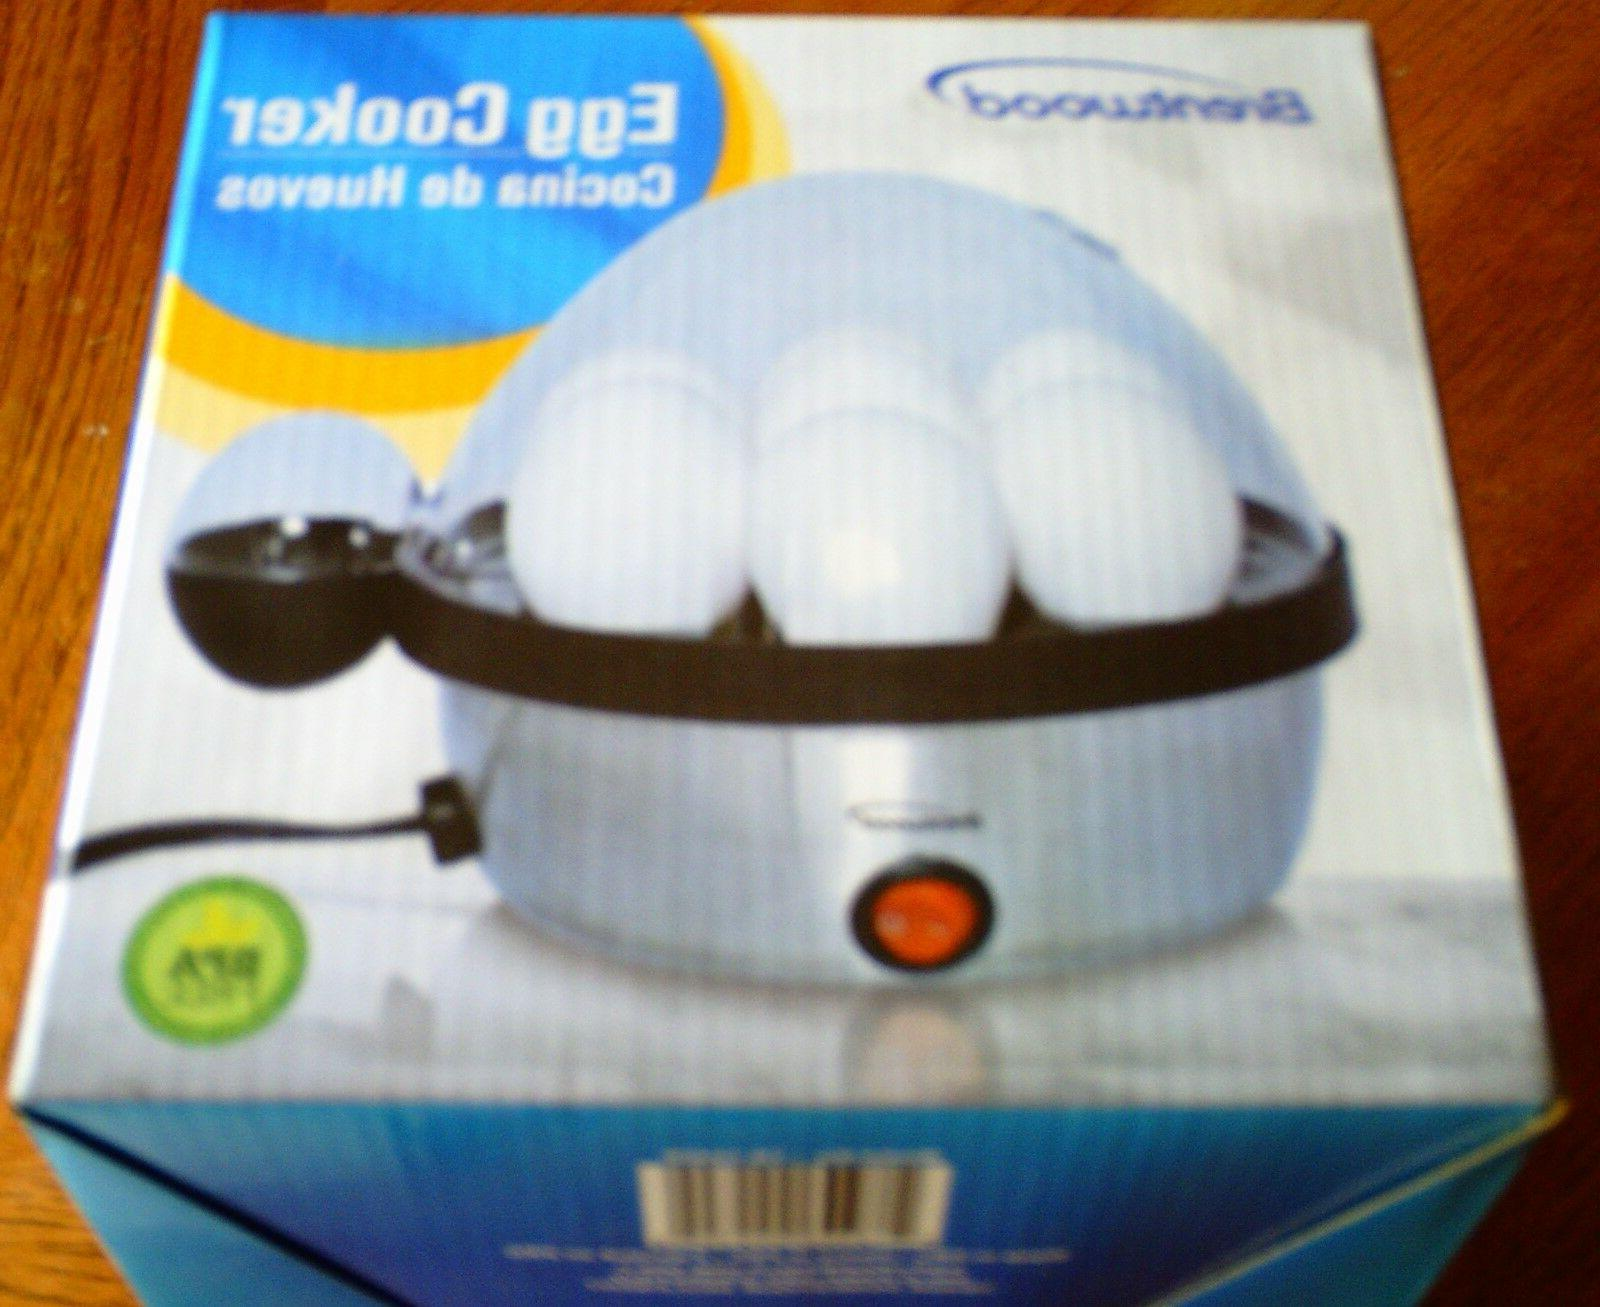 brentwood ts 1040s electric 7 egg cooker